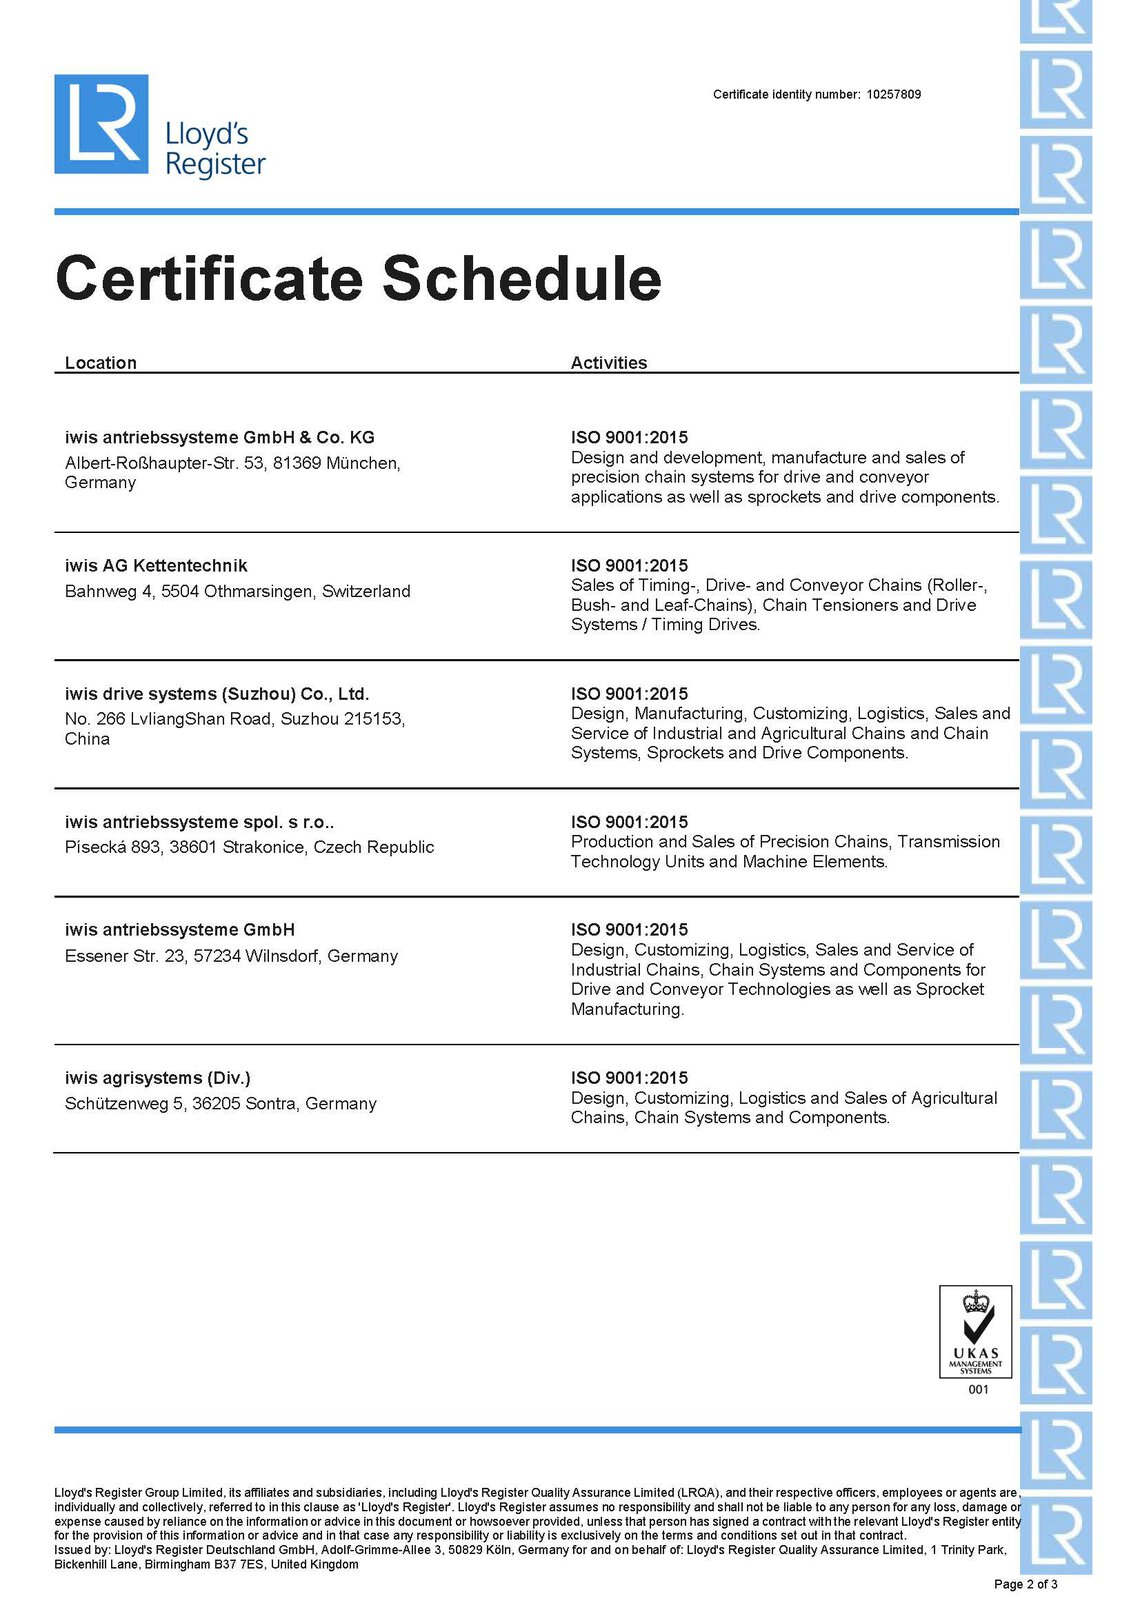 ISO9001 Multi-site Certificate schedule1 iwis